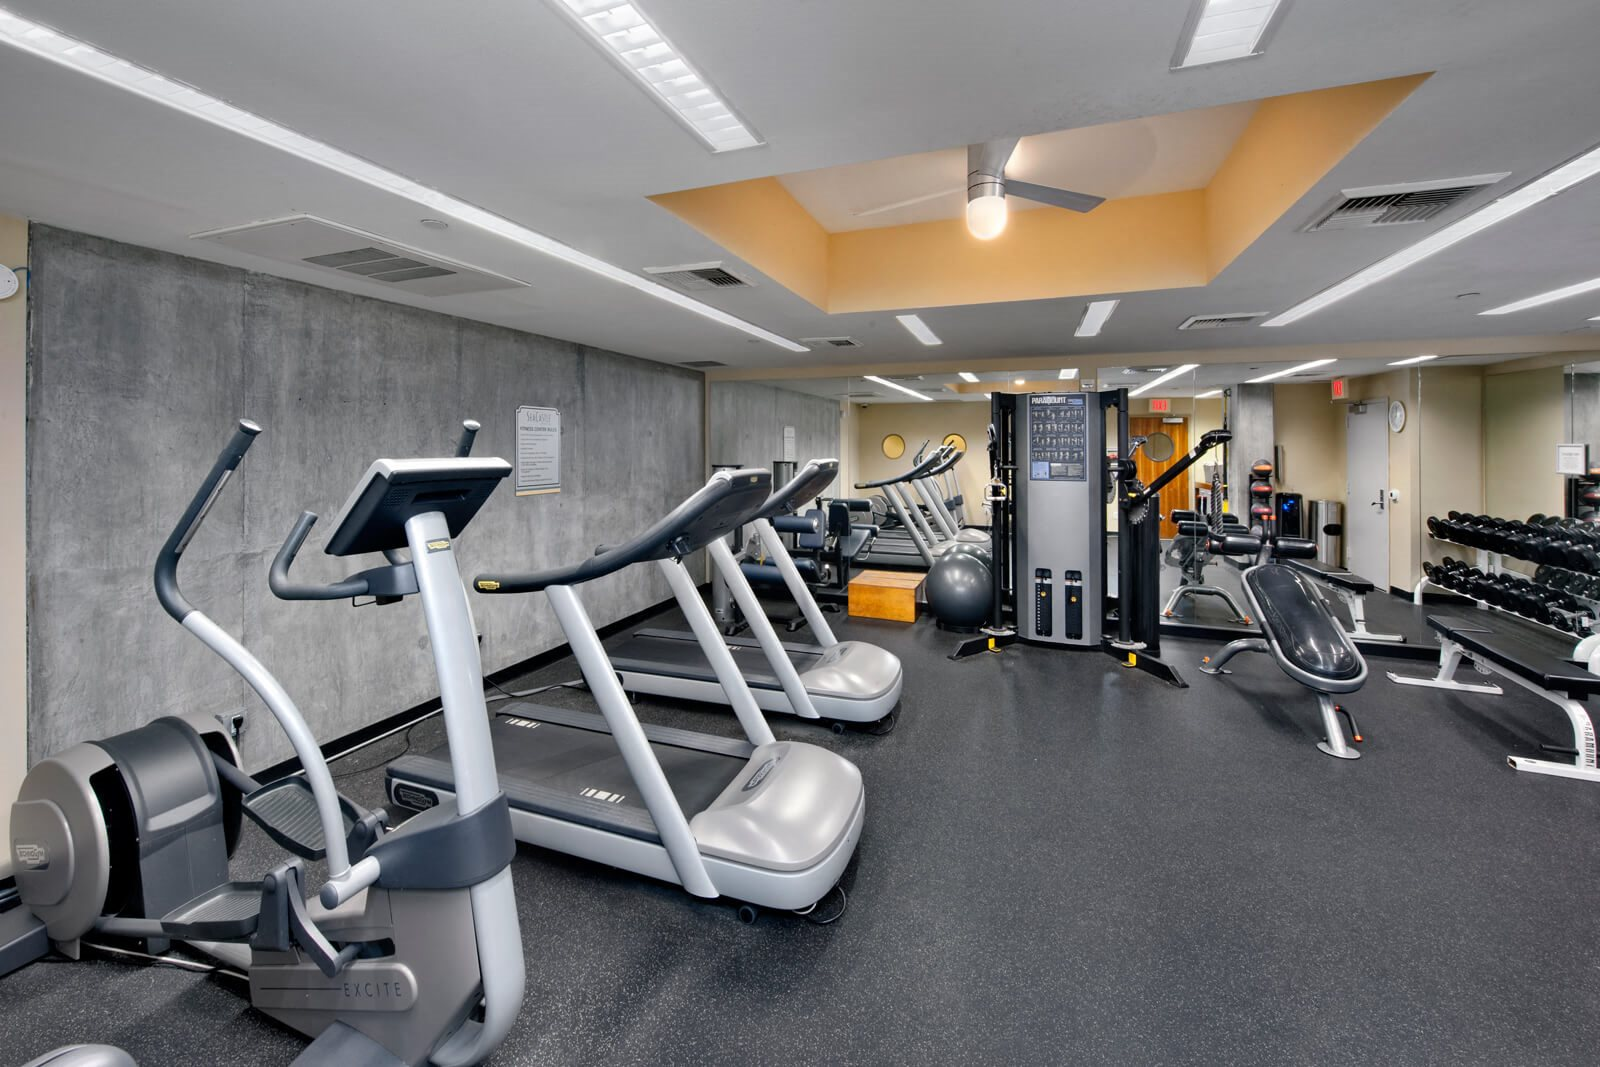 State-of-the-Art Fitness Center at Sea Castle, 1725 Ocean Front Walk, Santa Monica